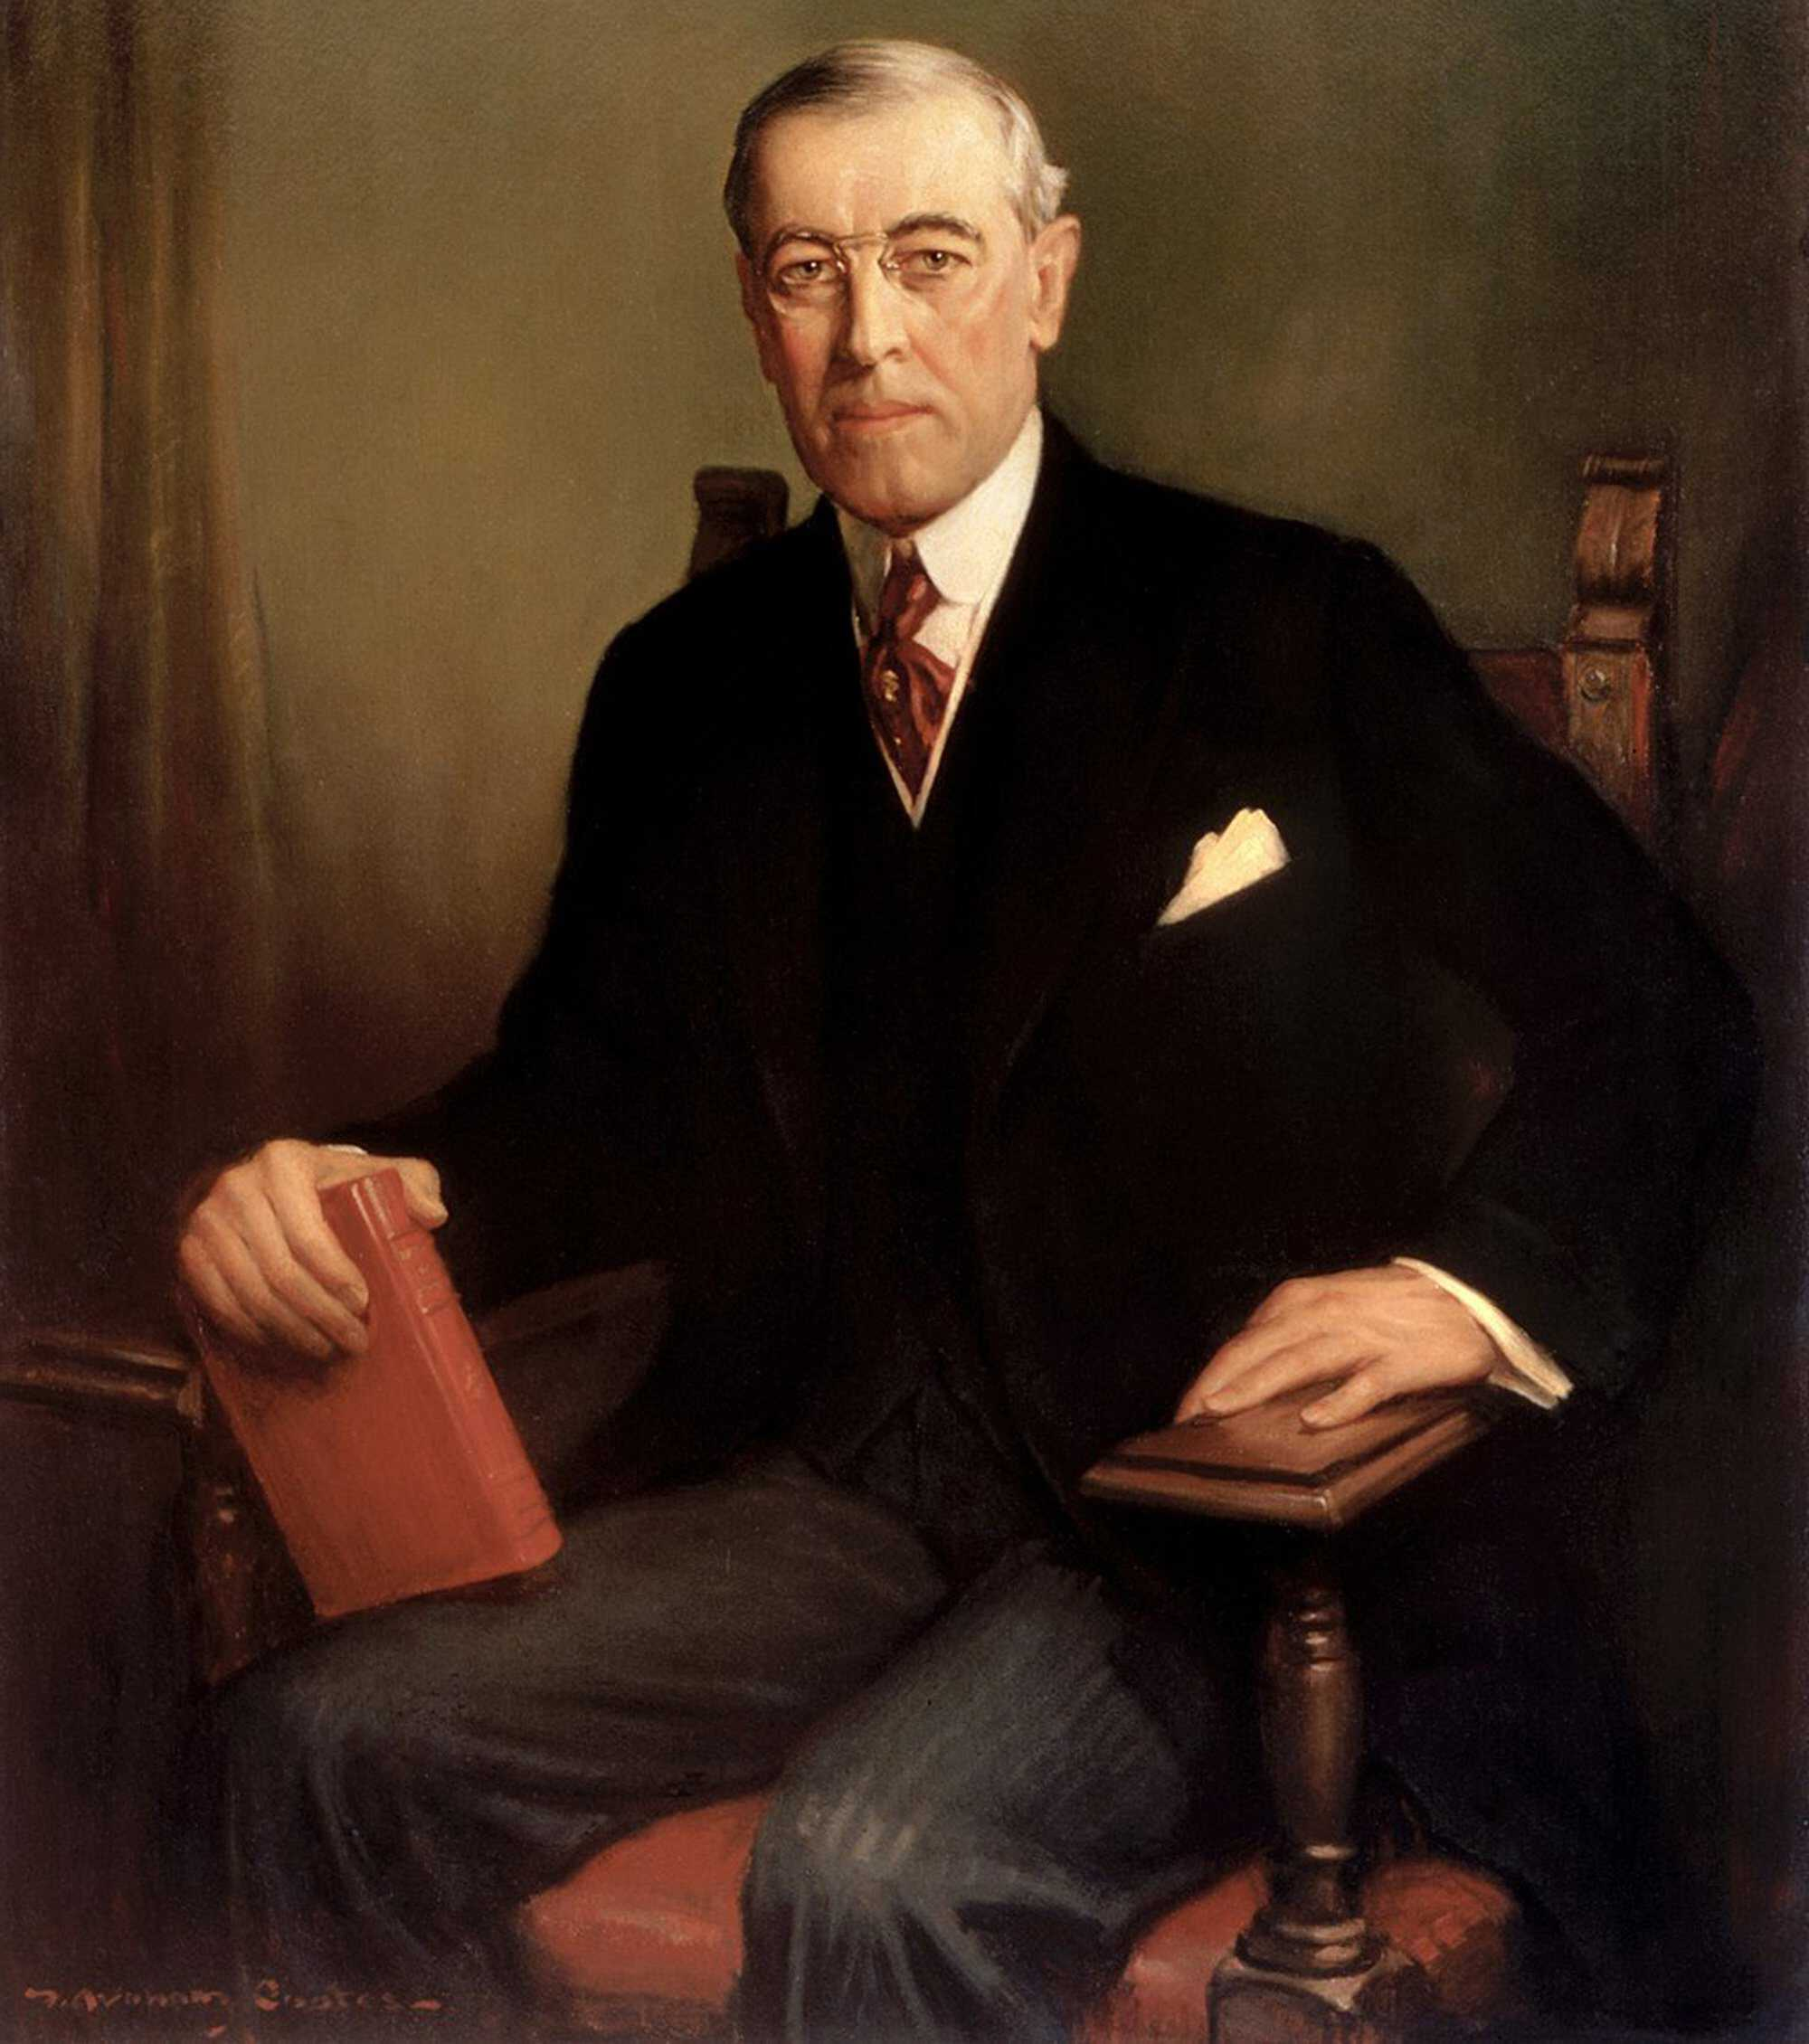 Wilson-legislation-Official-Presidential-portrait-1912.jpg